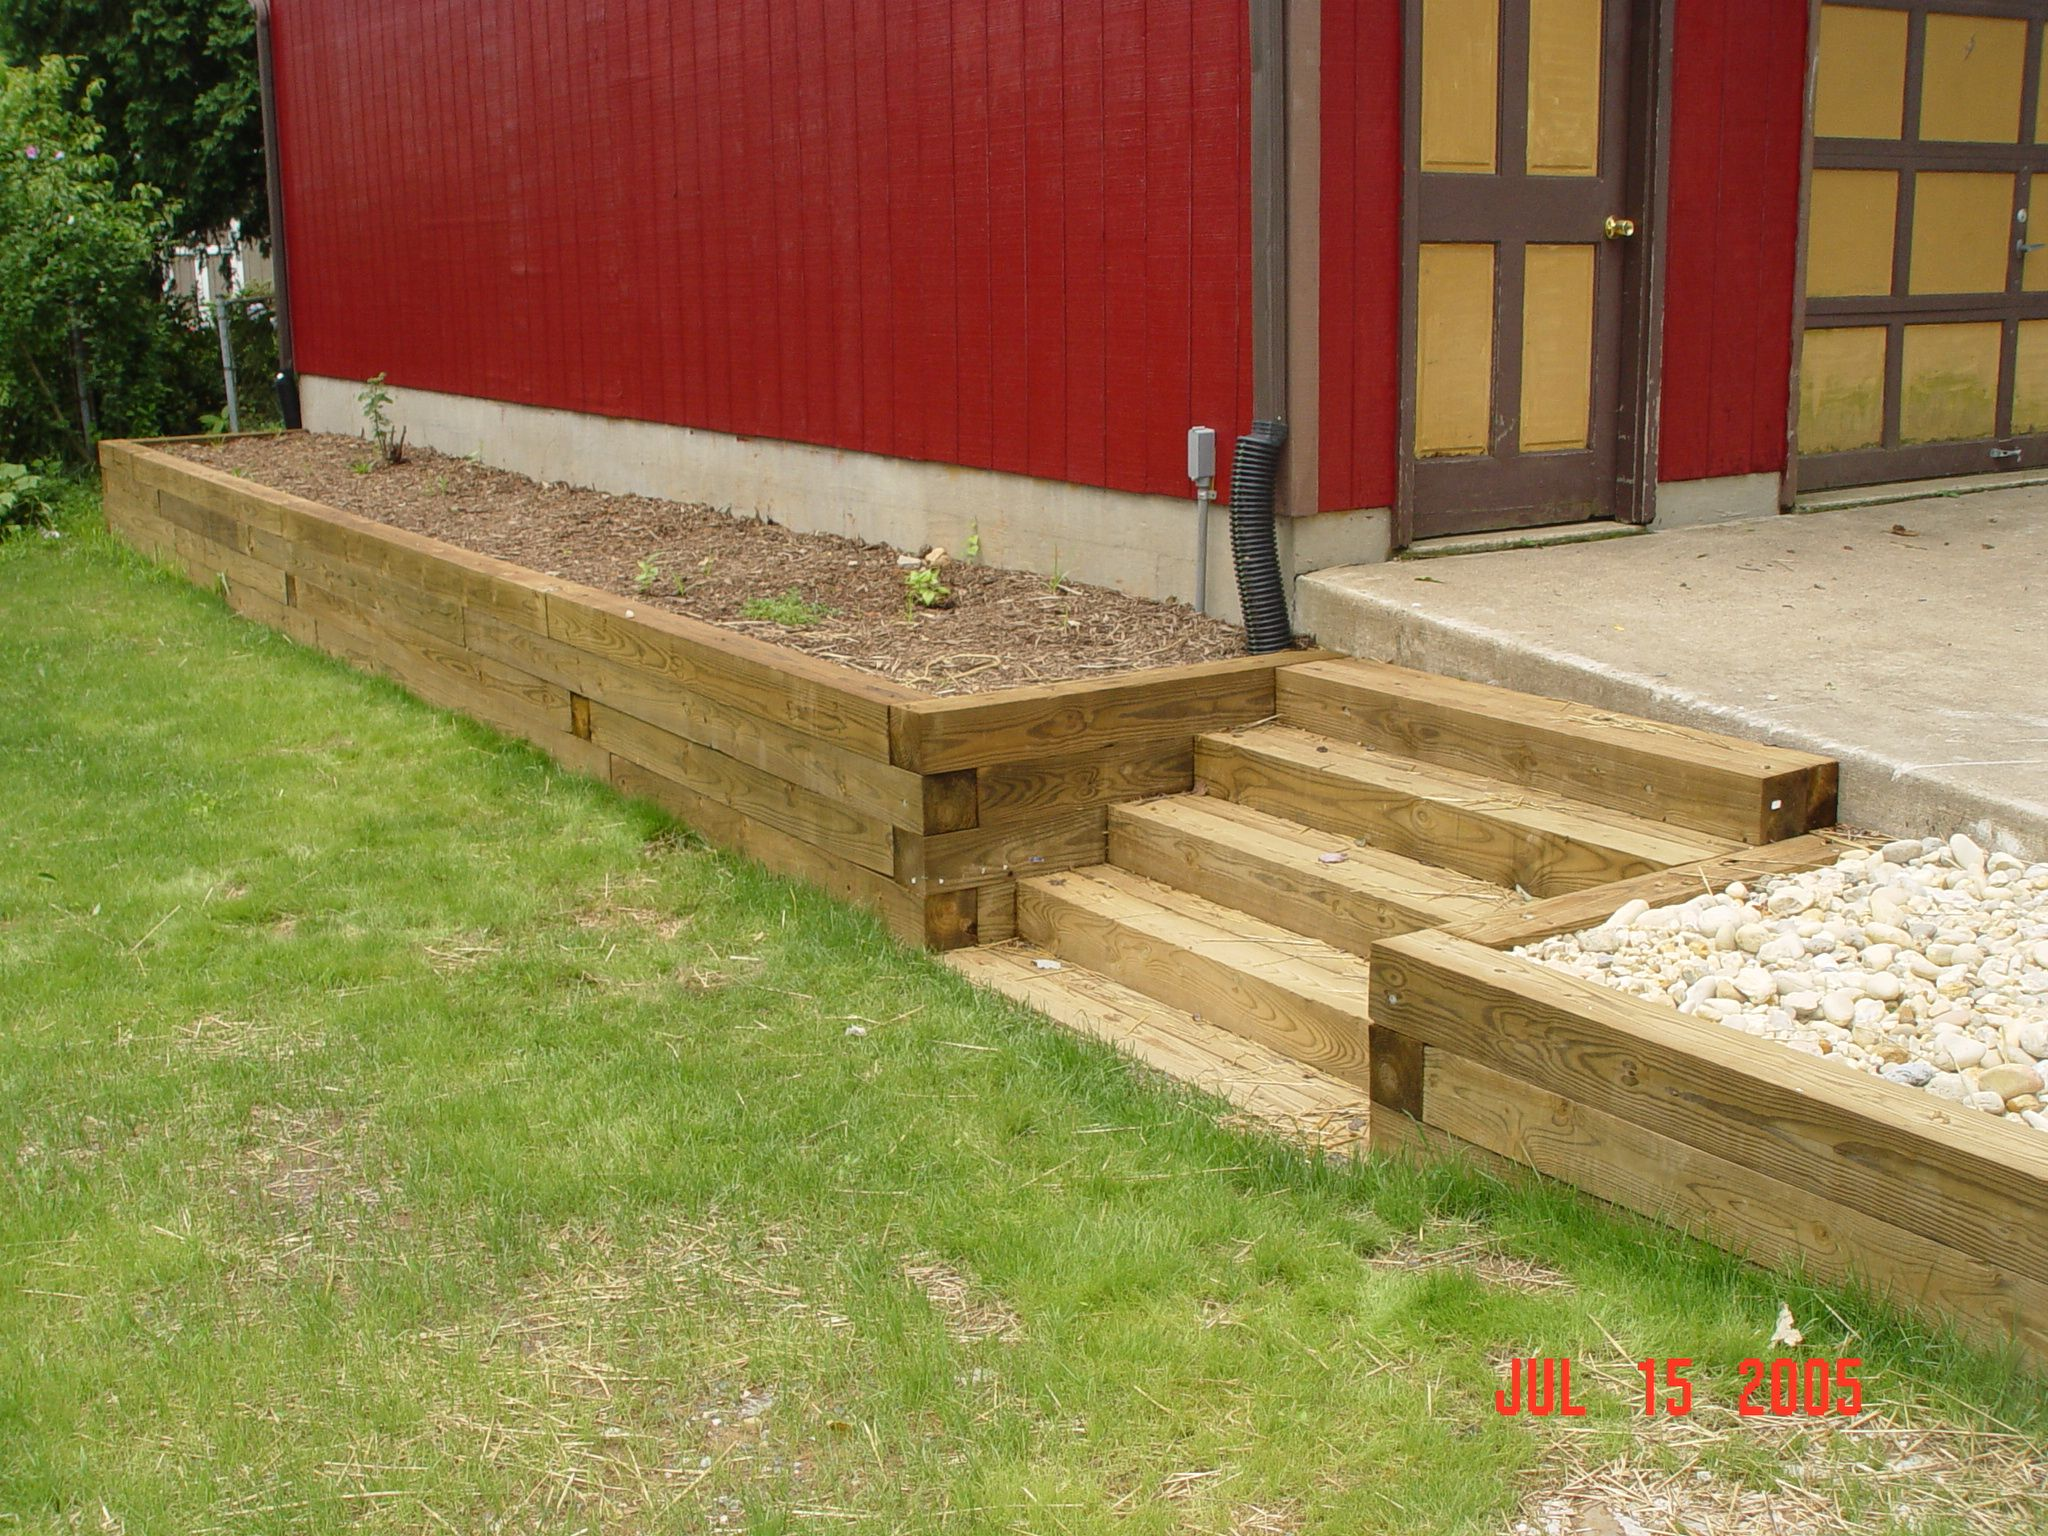 Wooden Timber Retaining Wall Drainage And Erosion Solutions